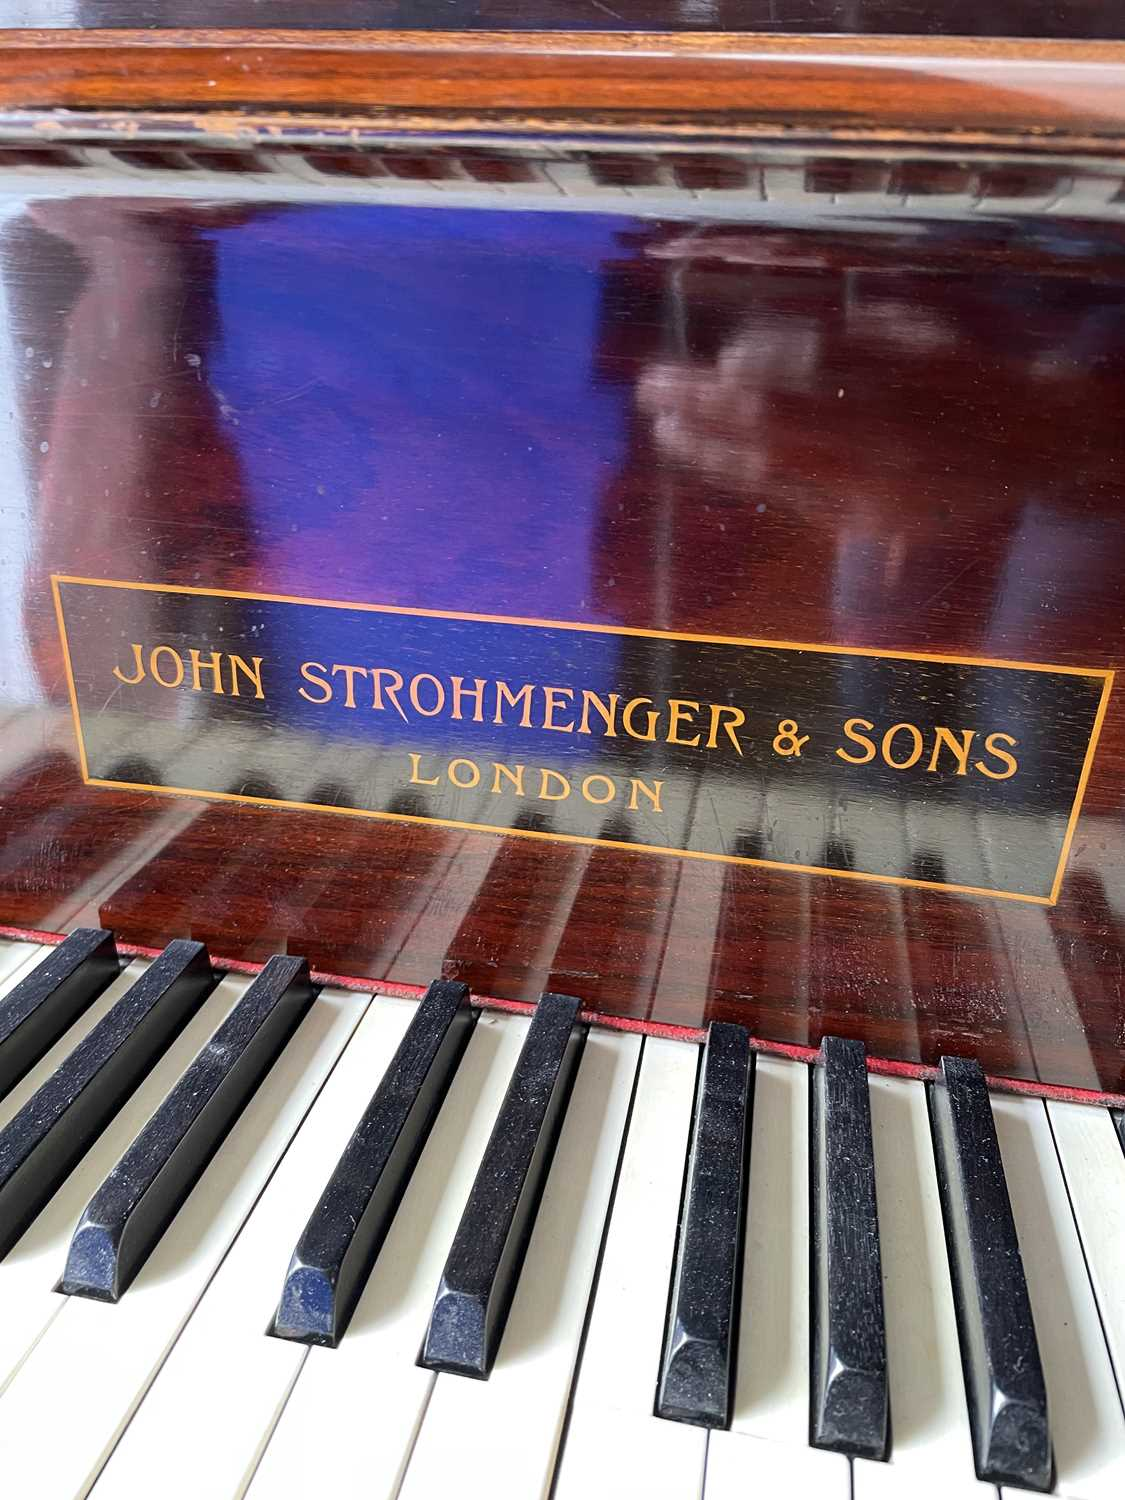 A mahogany cased baby grand piano, by John Strohmenger & Sons, London, 143 cm wide x 101 cm high x - Image 9 of 21